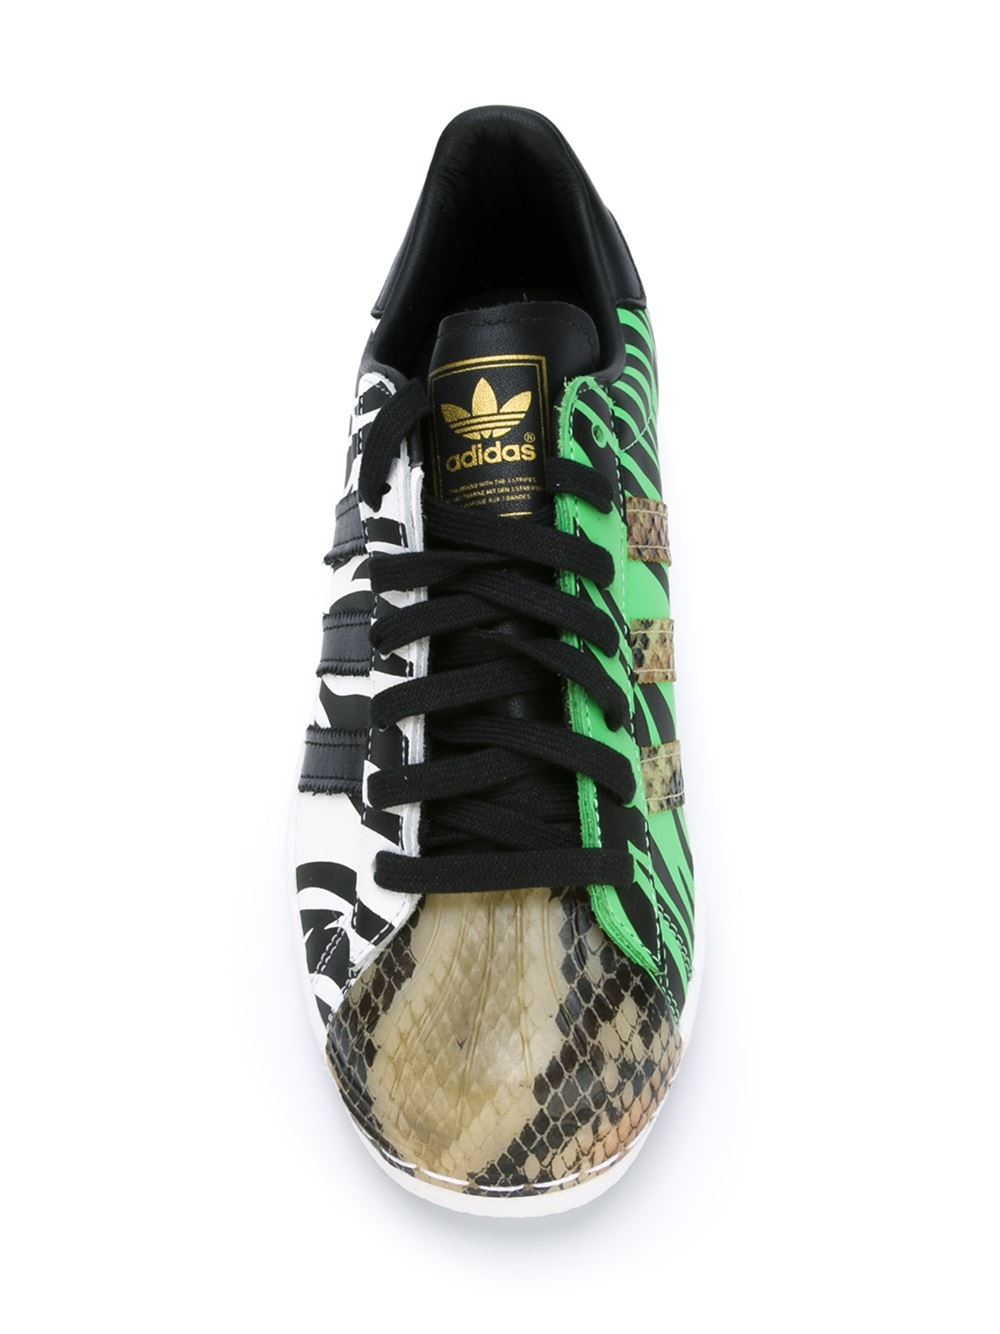 d8a26b3061ce2e Adidas Superstar Zebra Print herbusinessuk.co.uk